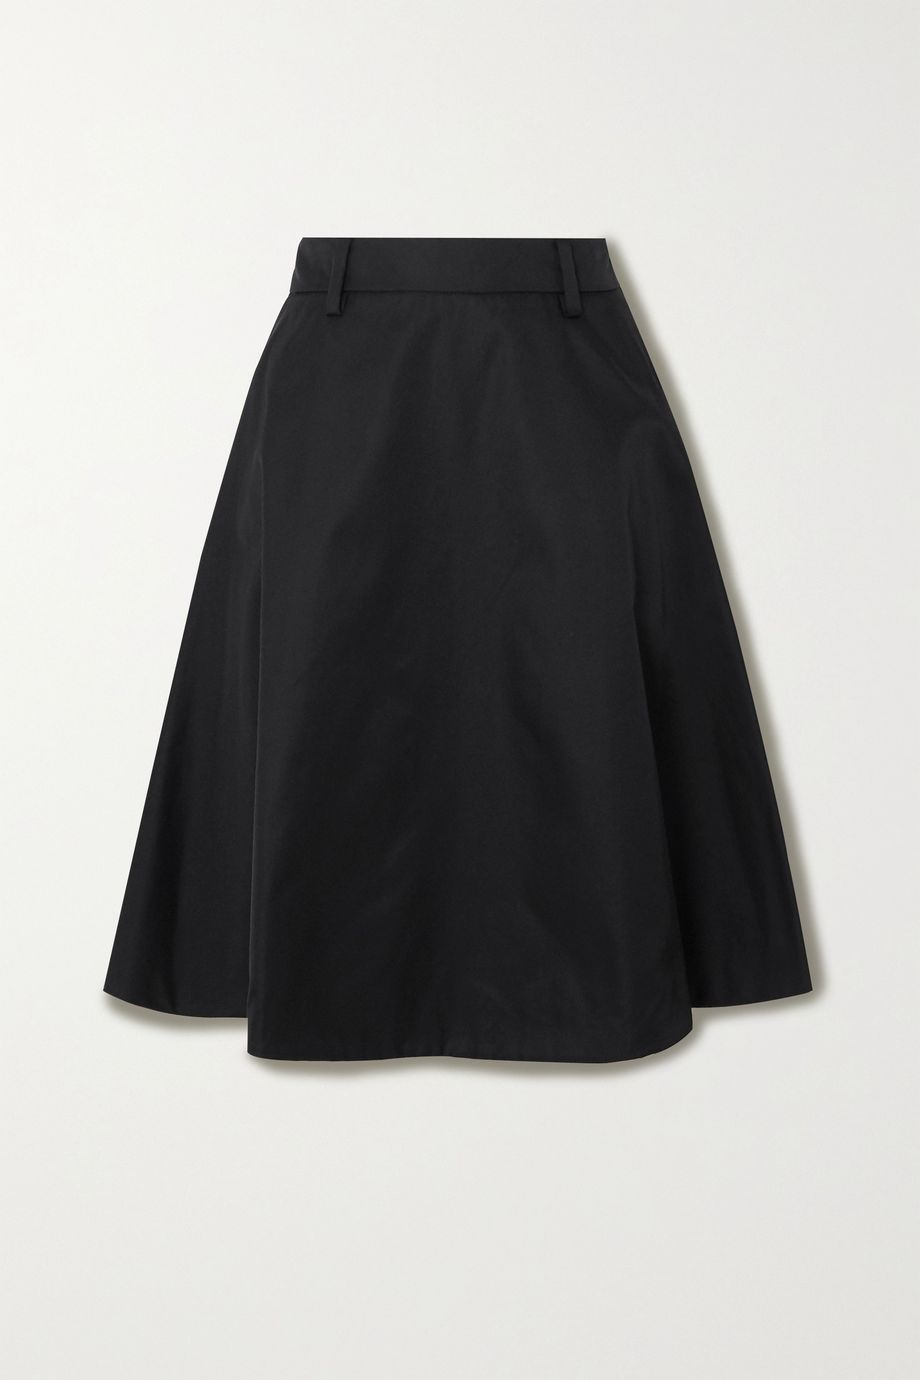 Prada Appliquéd nylon skirt